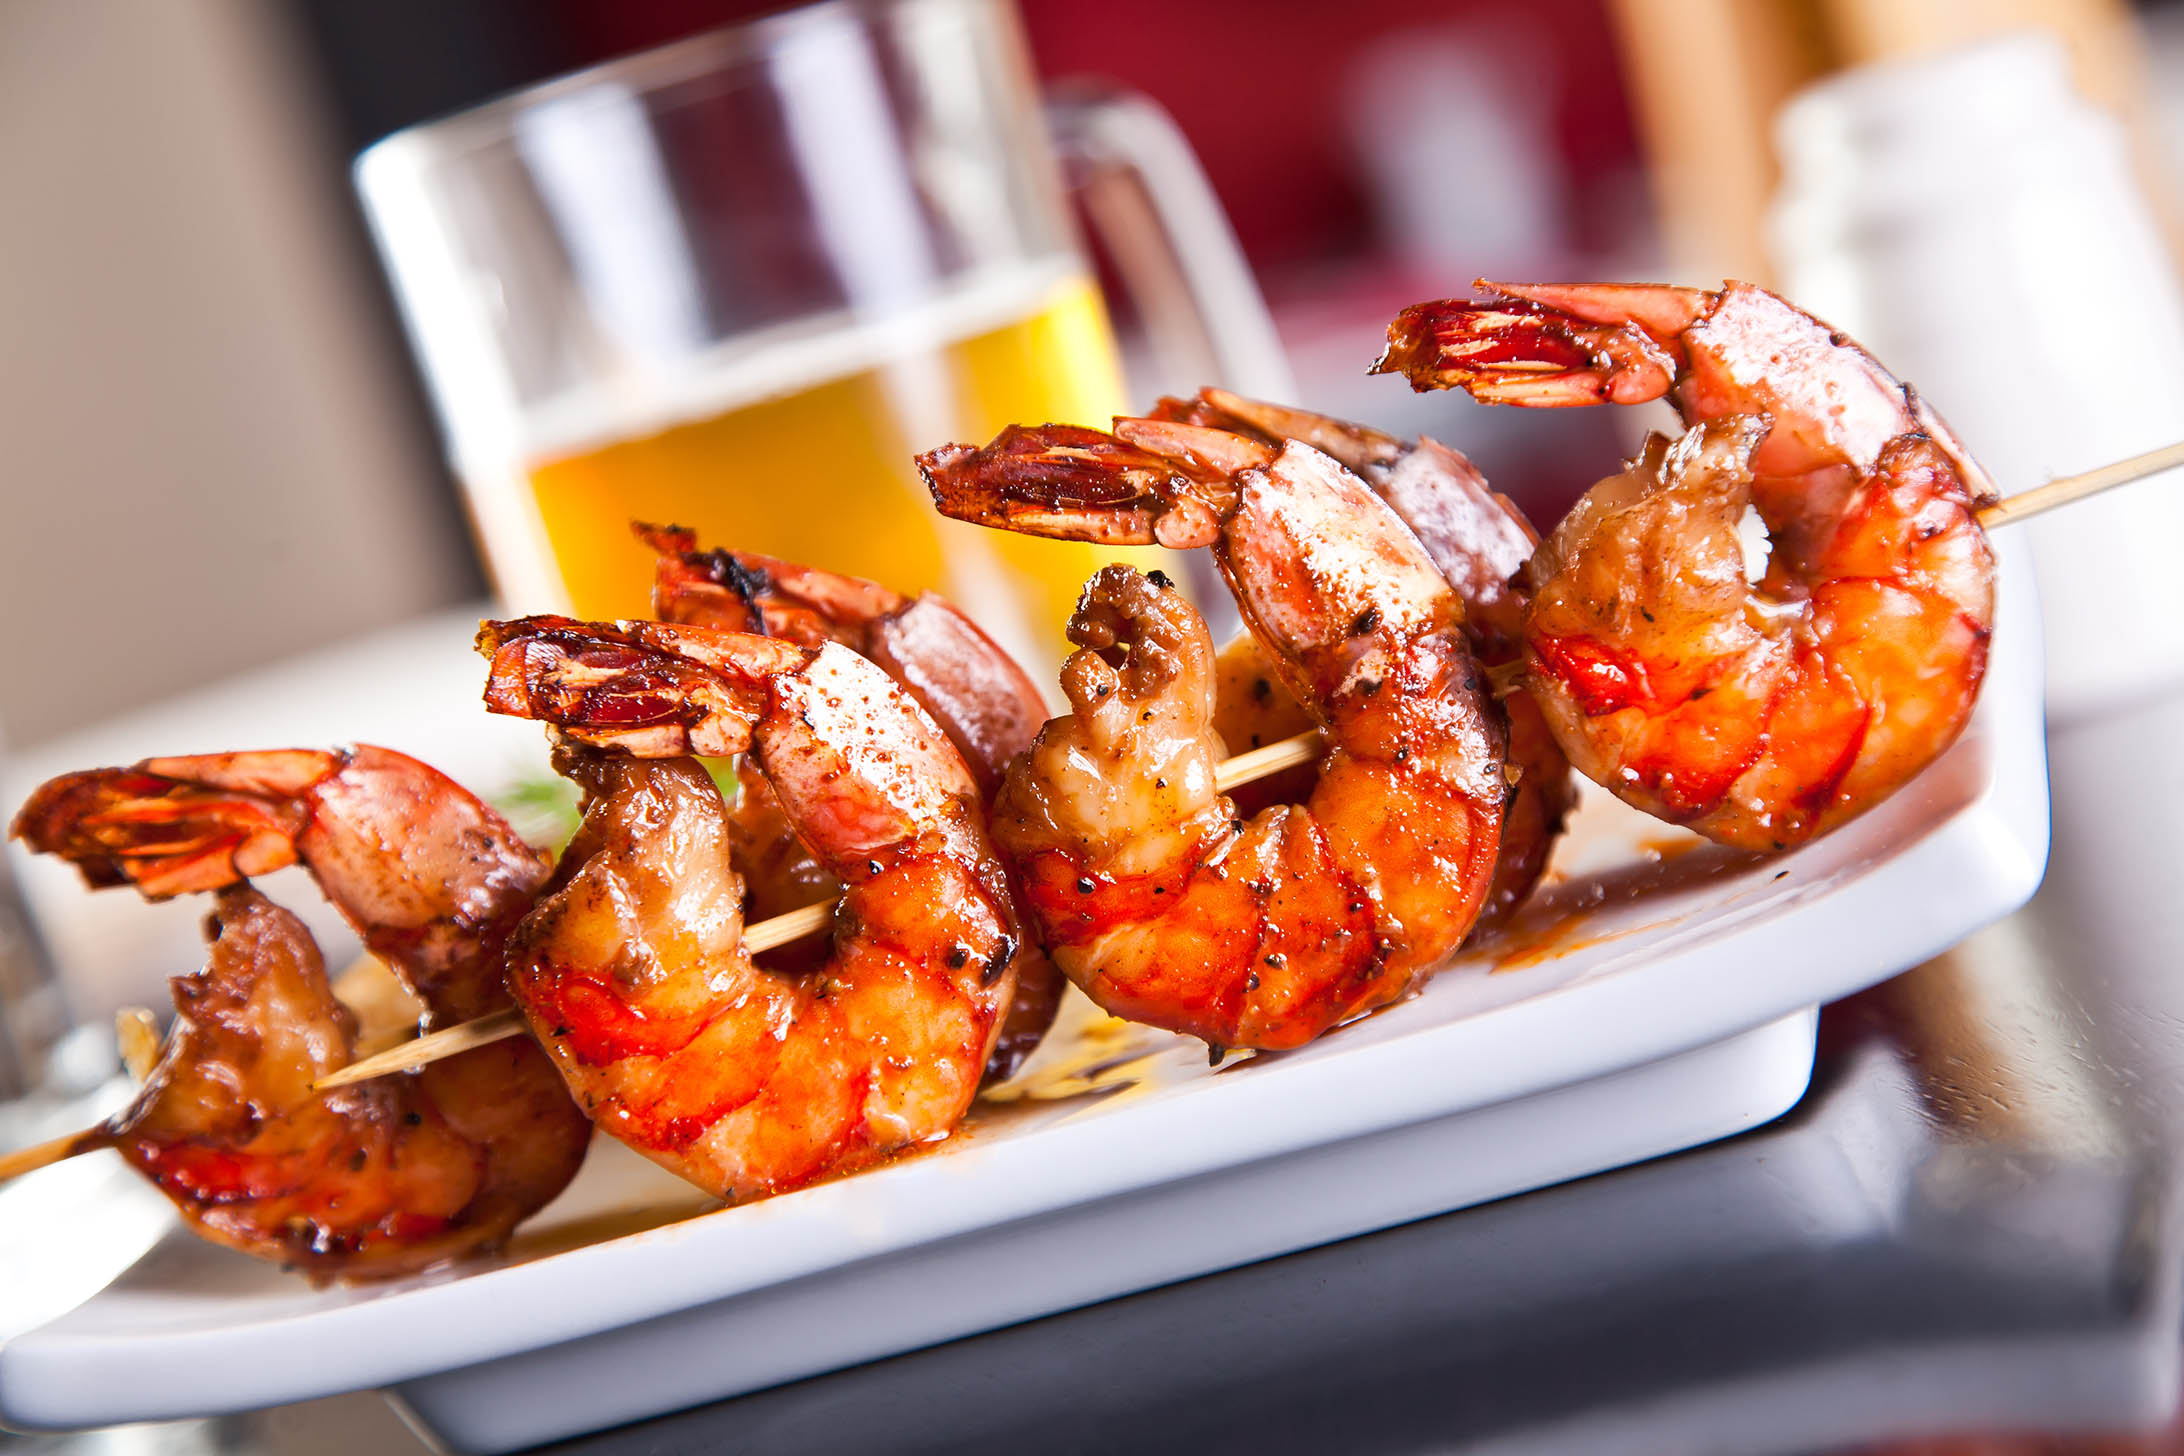 On-trend flavors elevate seafood dishes Image